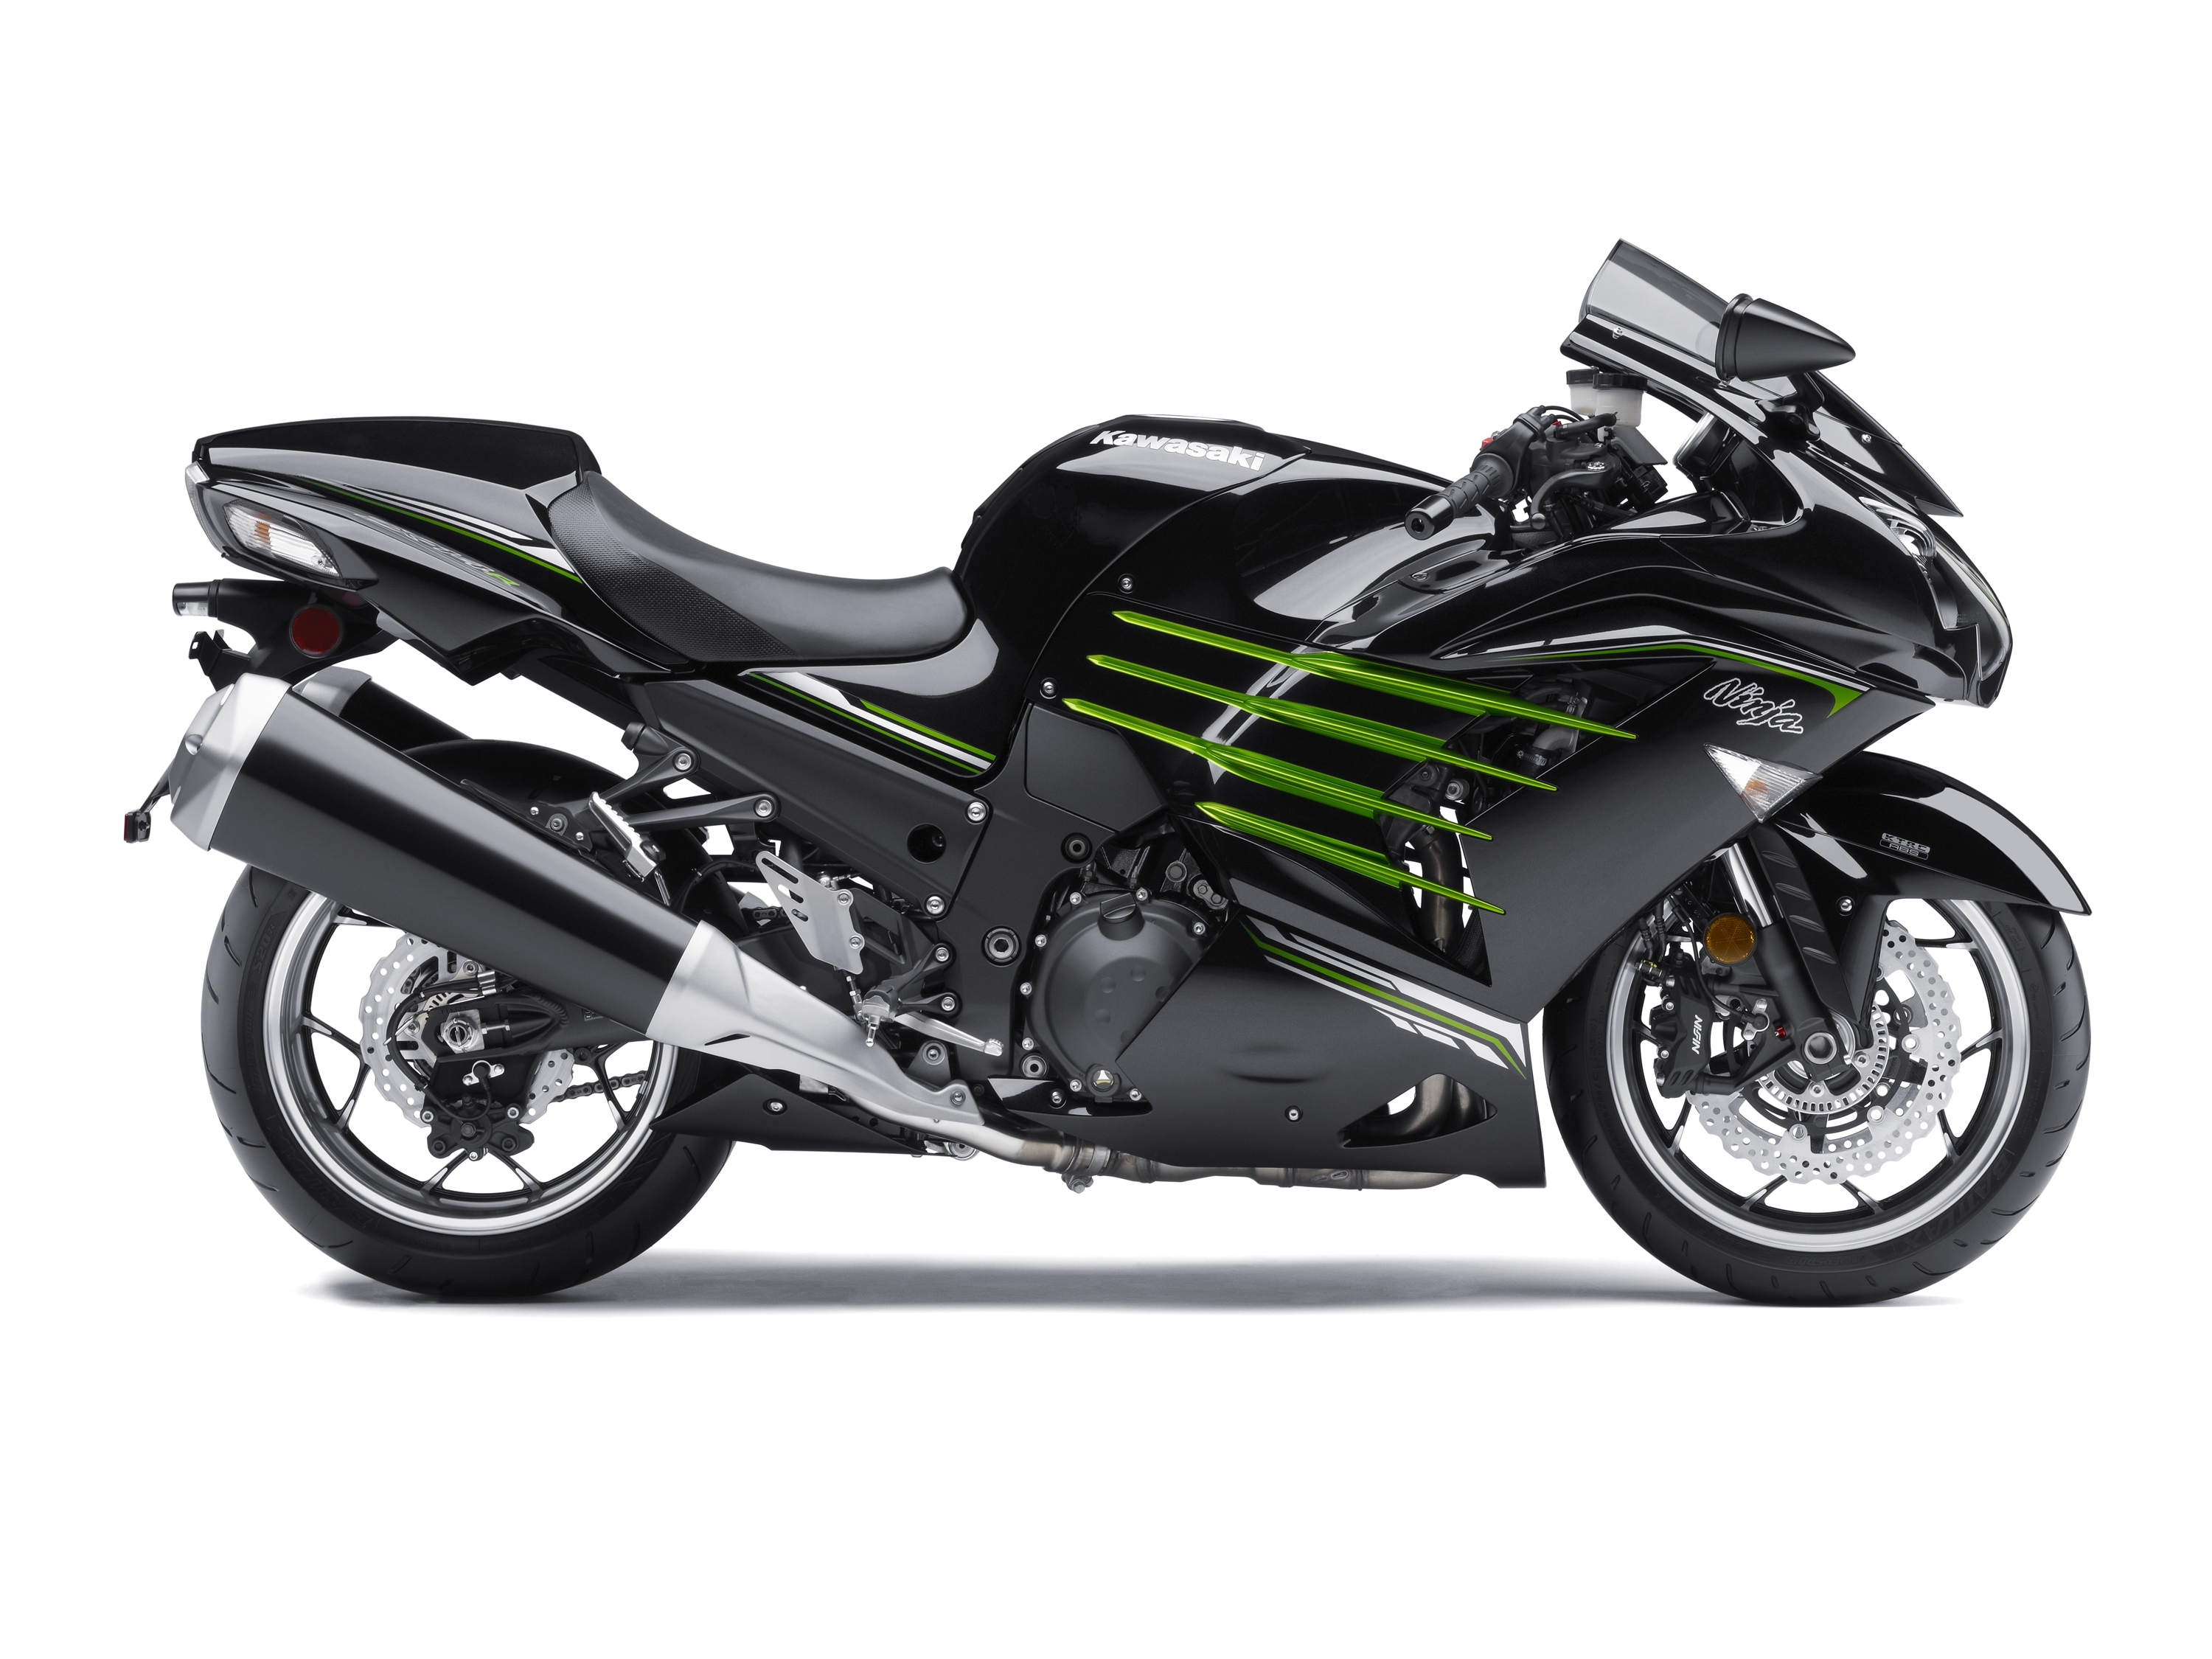 2013 kawasaki zx14r now available with optional abs